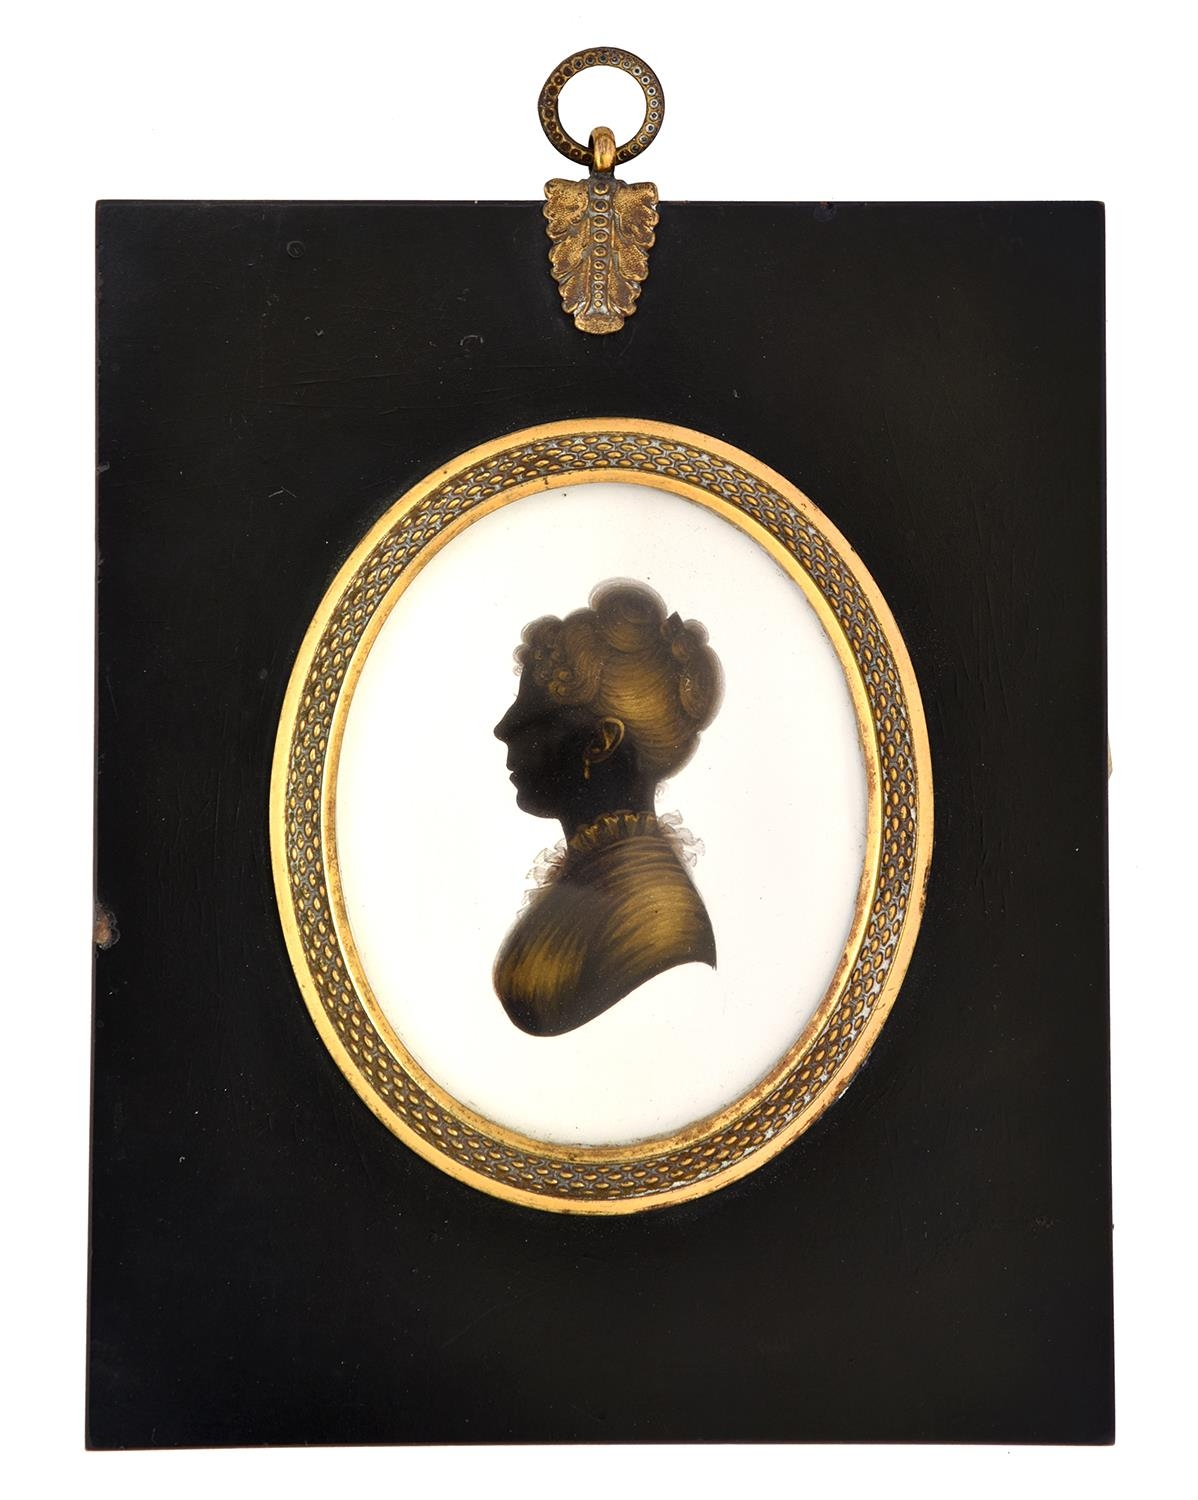 John Miers(c.1758-1821) - Silhouette of MrsHenry Reynolds,her hair dressed in antique Roman style